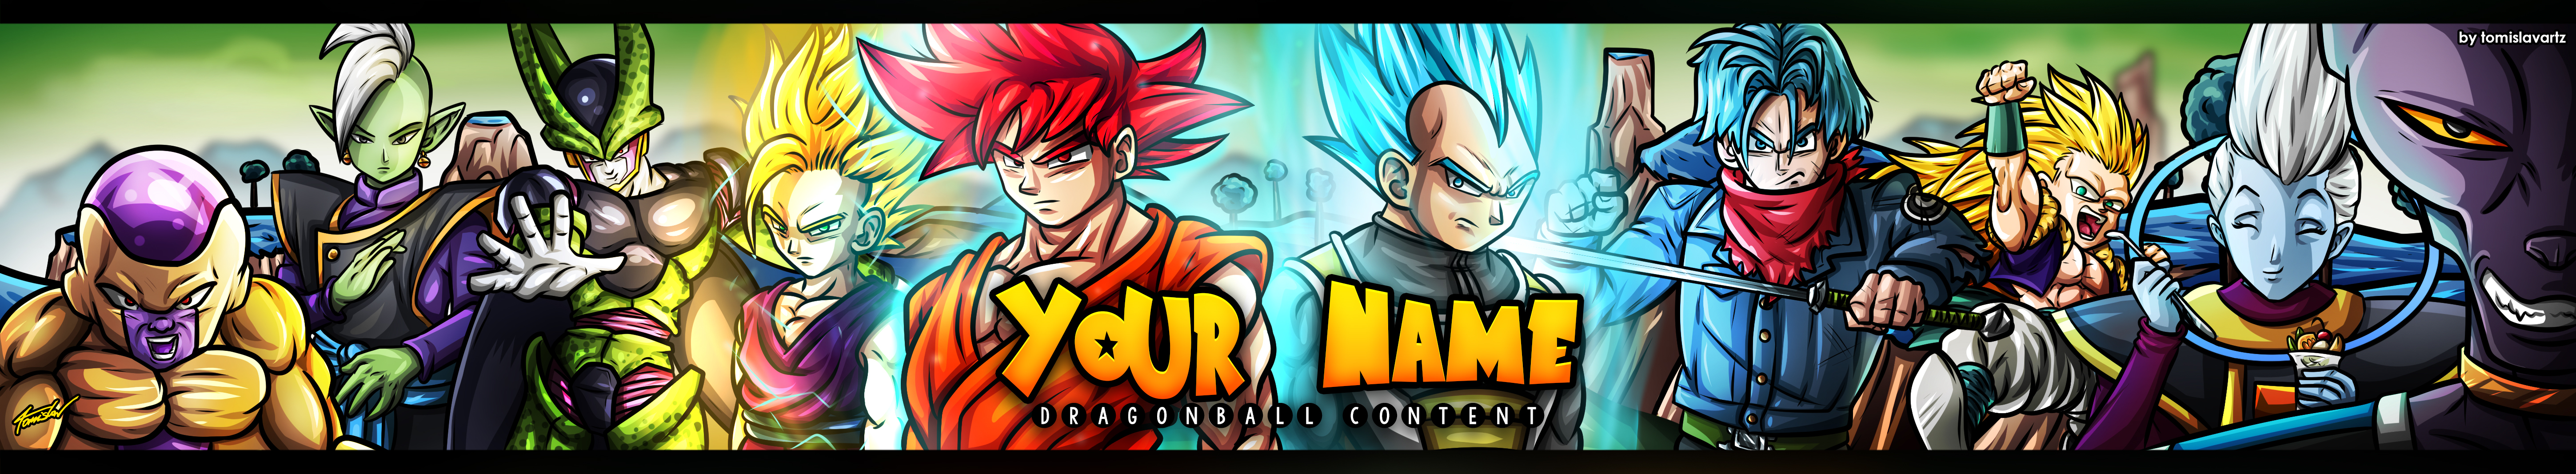 Free Dragon Ball Youtube Banner Download By